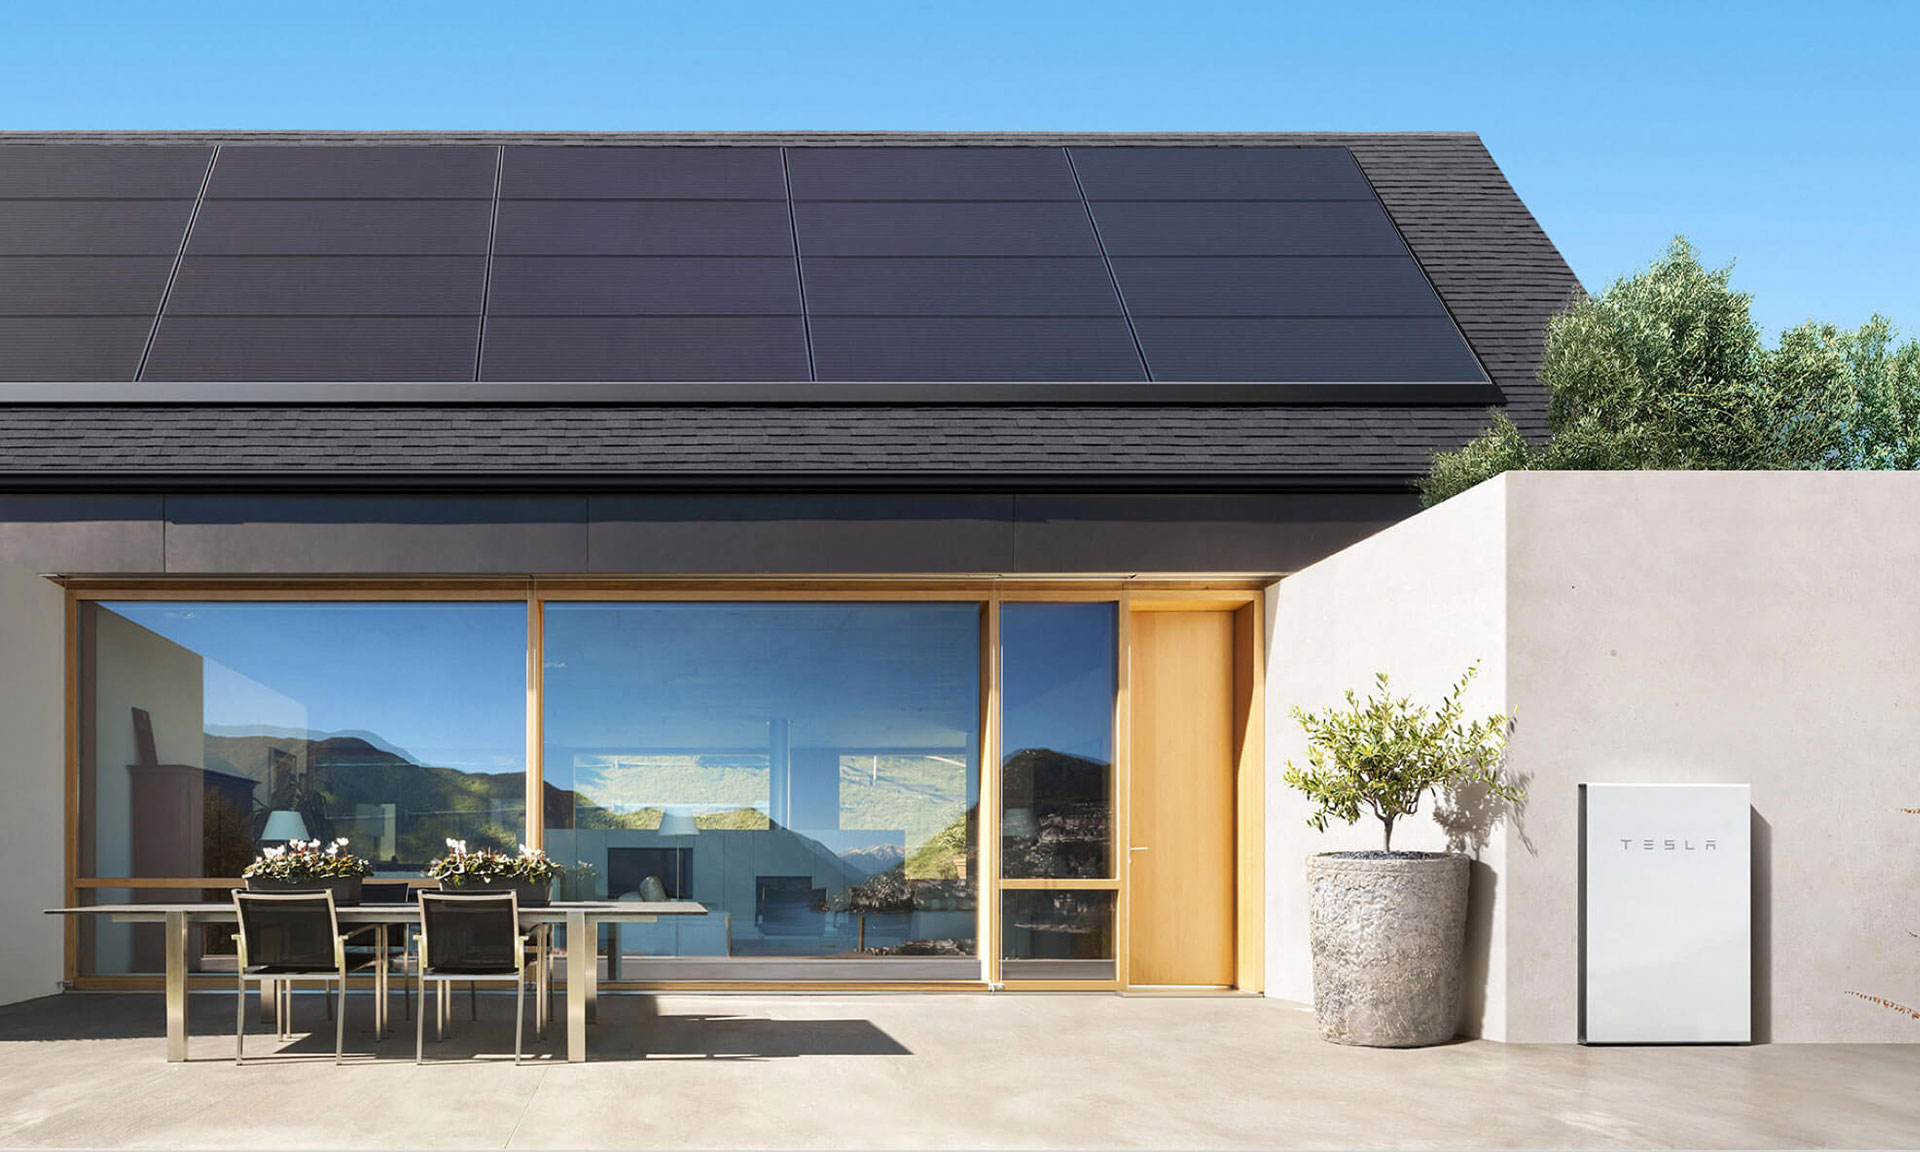 House with solar panels on the roof and a battery on the wall